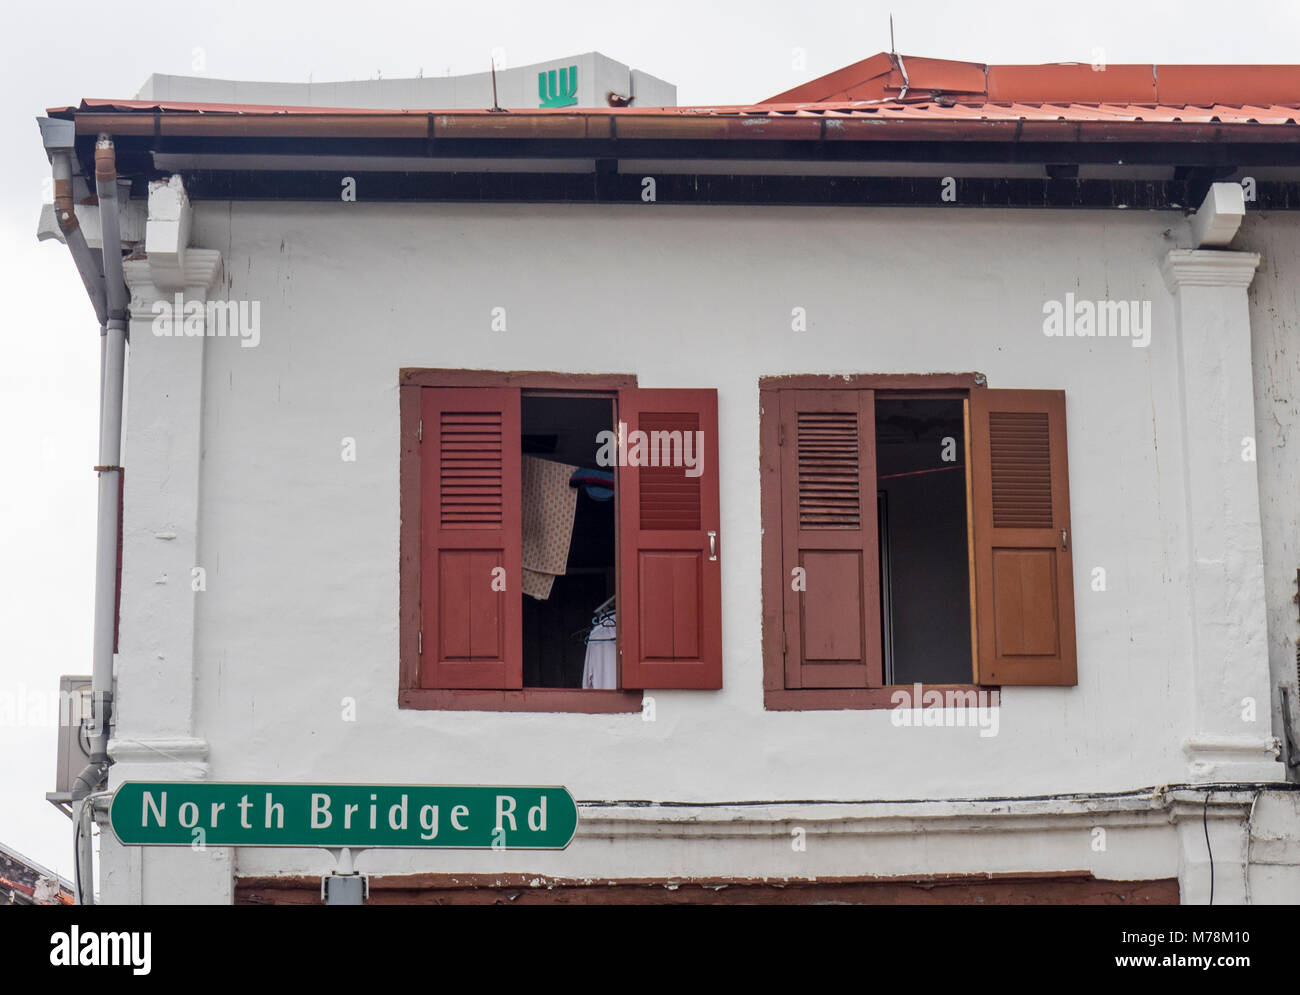 Window shutters of the upper storey of a traditional shophouse on North Bridge Rd, Singapore. - Stock Image